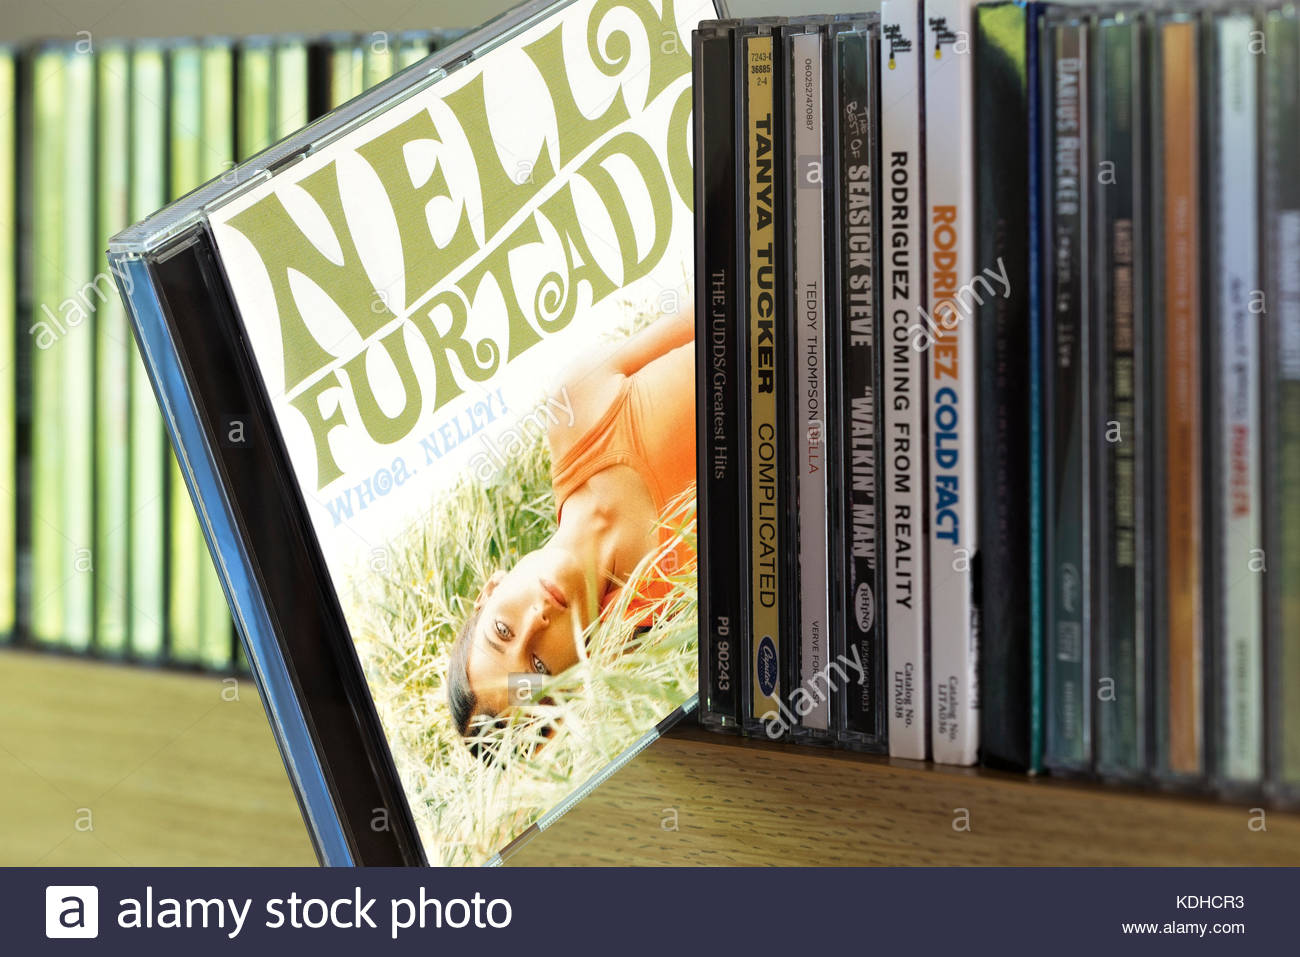 Whoa Nelly , Nelly Furtado CD pulled out from among other CD's on a shelf, Dorset, England Stock Photo